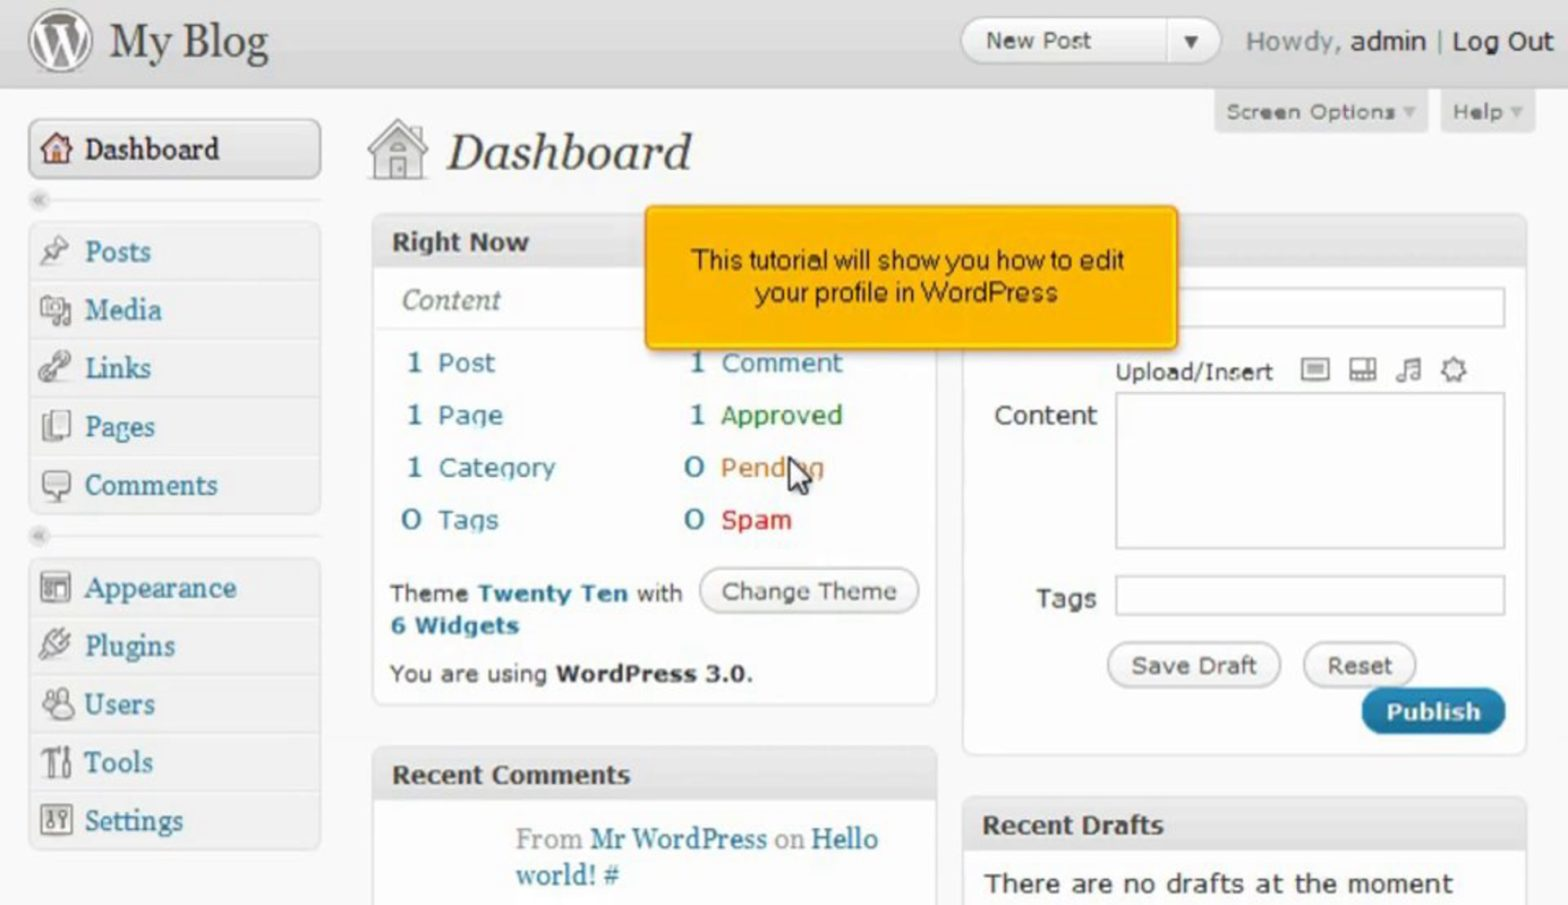 How to edit your profile in WordPress